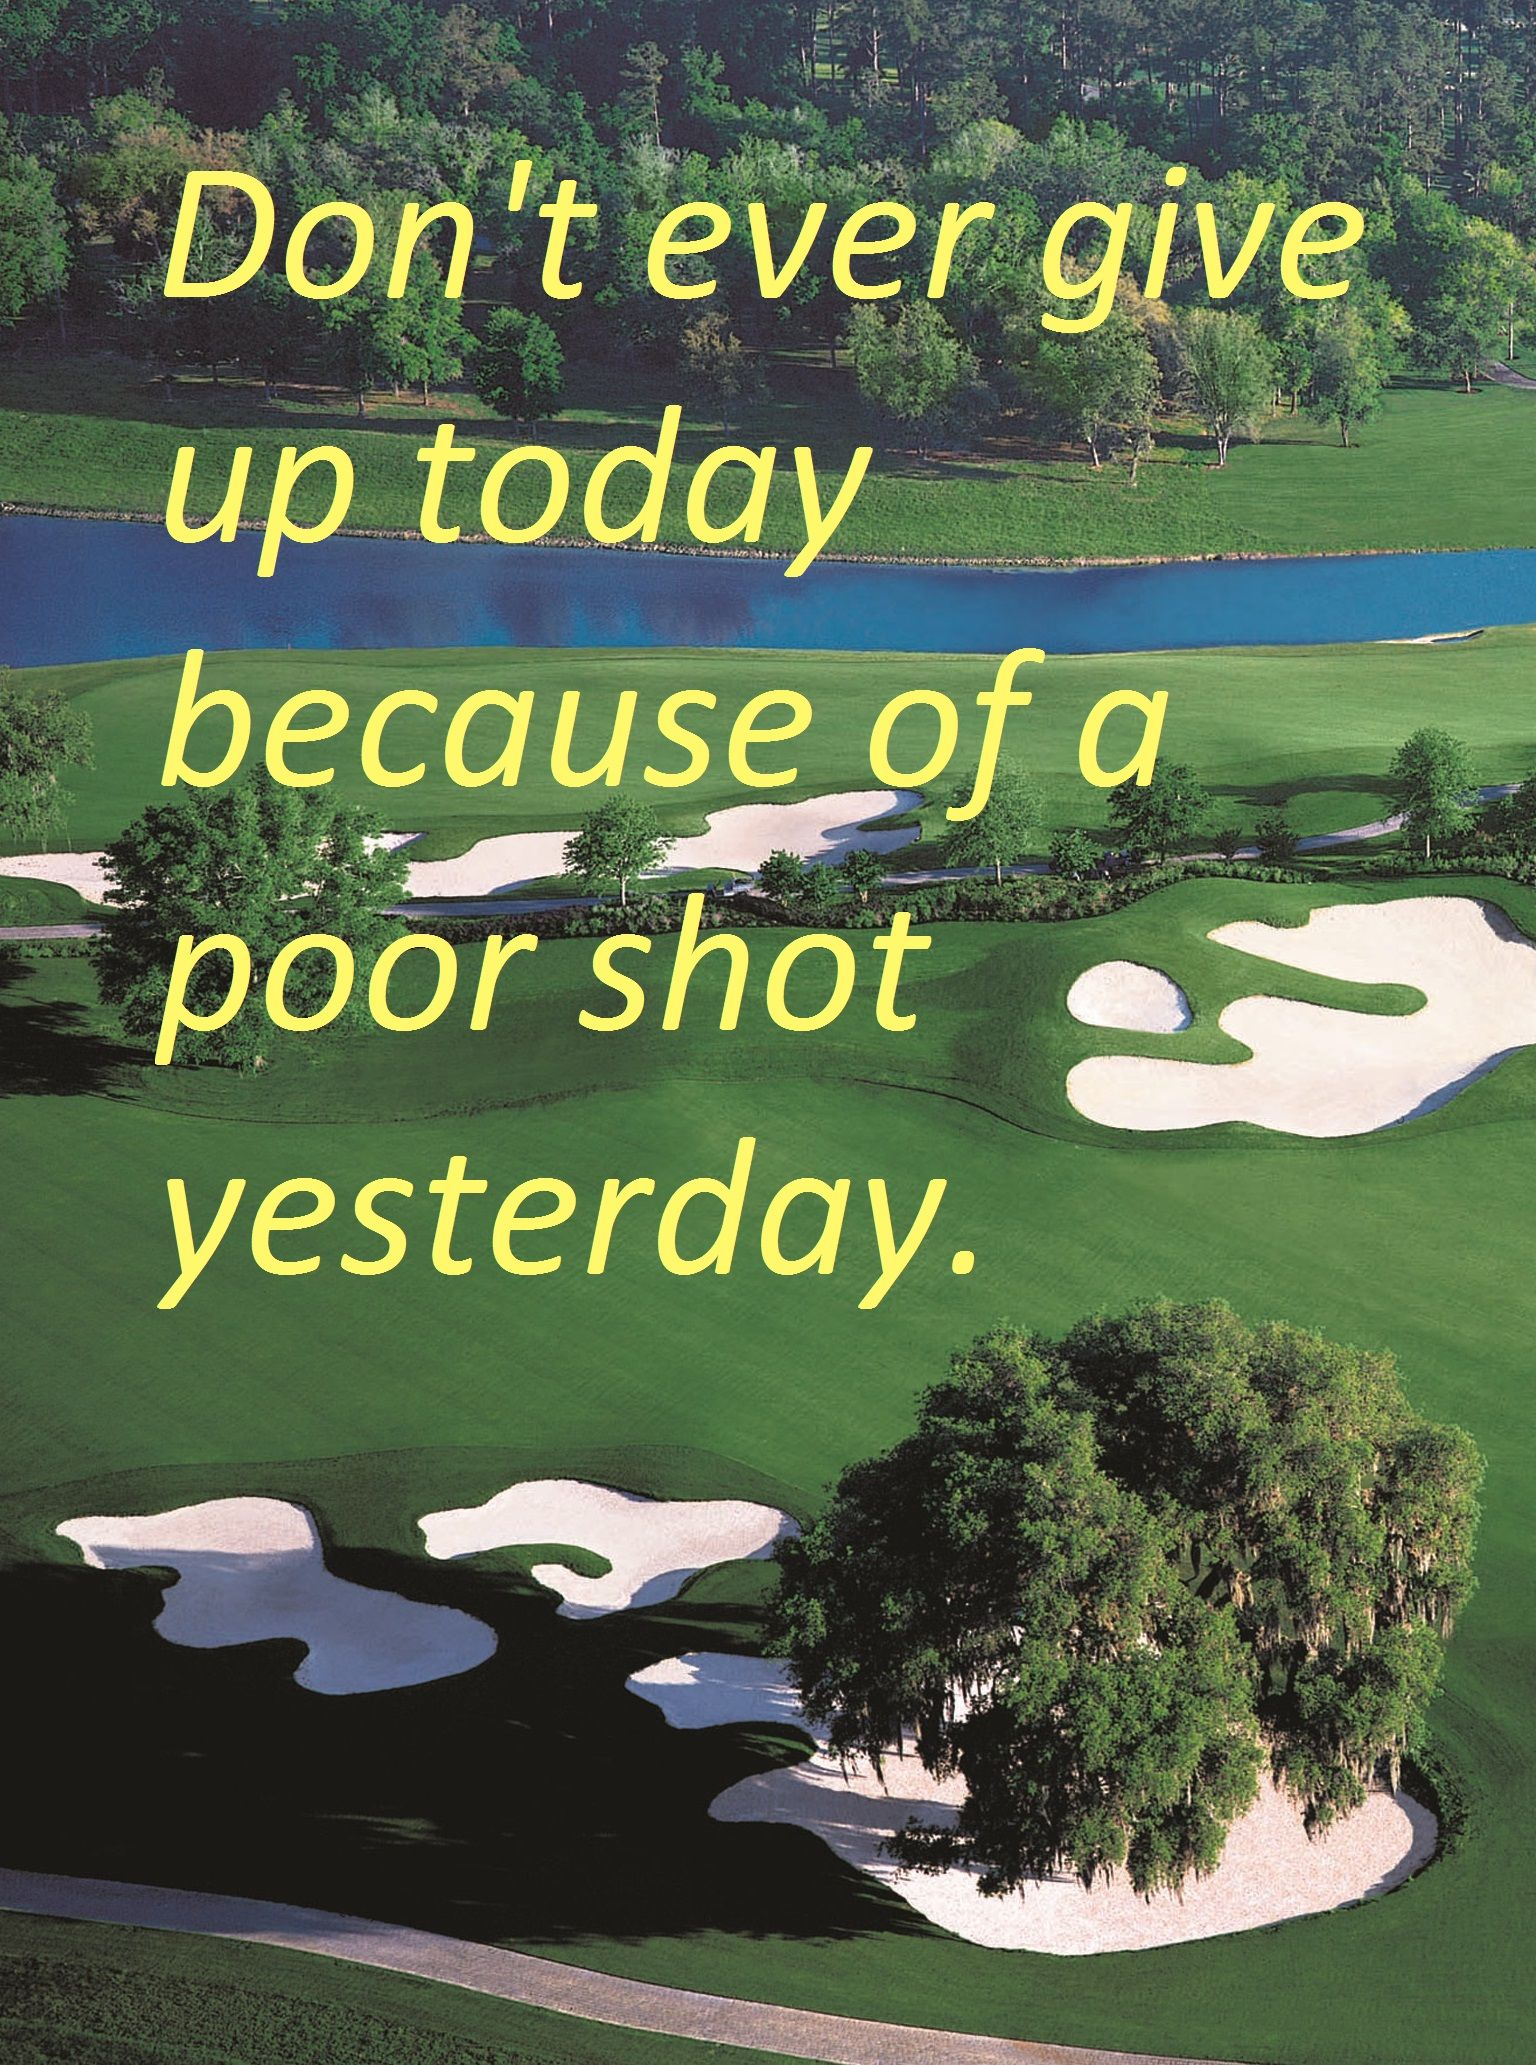 Golf Quotes About Life Don't Ever Give Up Today Because Of A Poor Shot Yesterday Golf